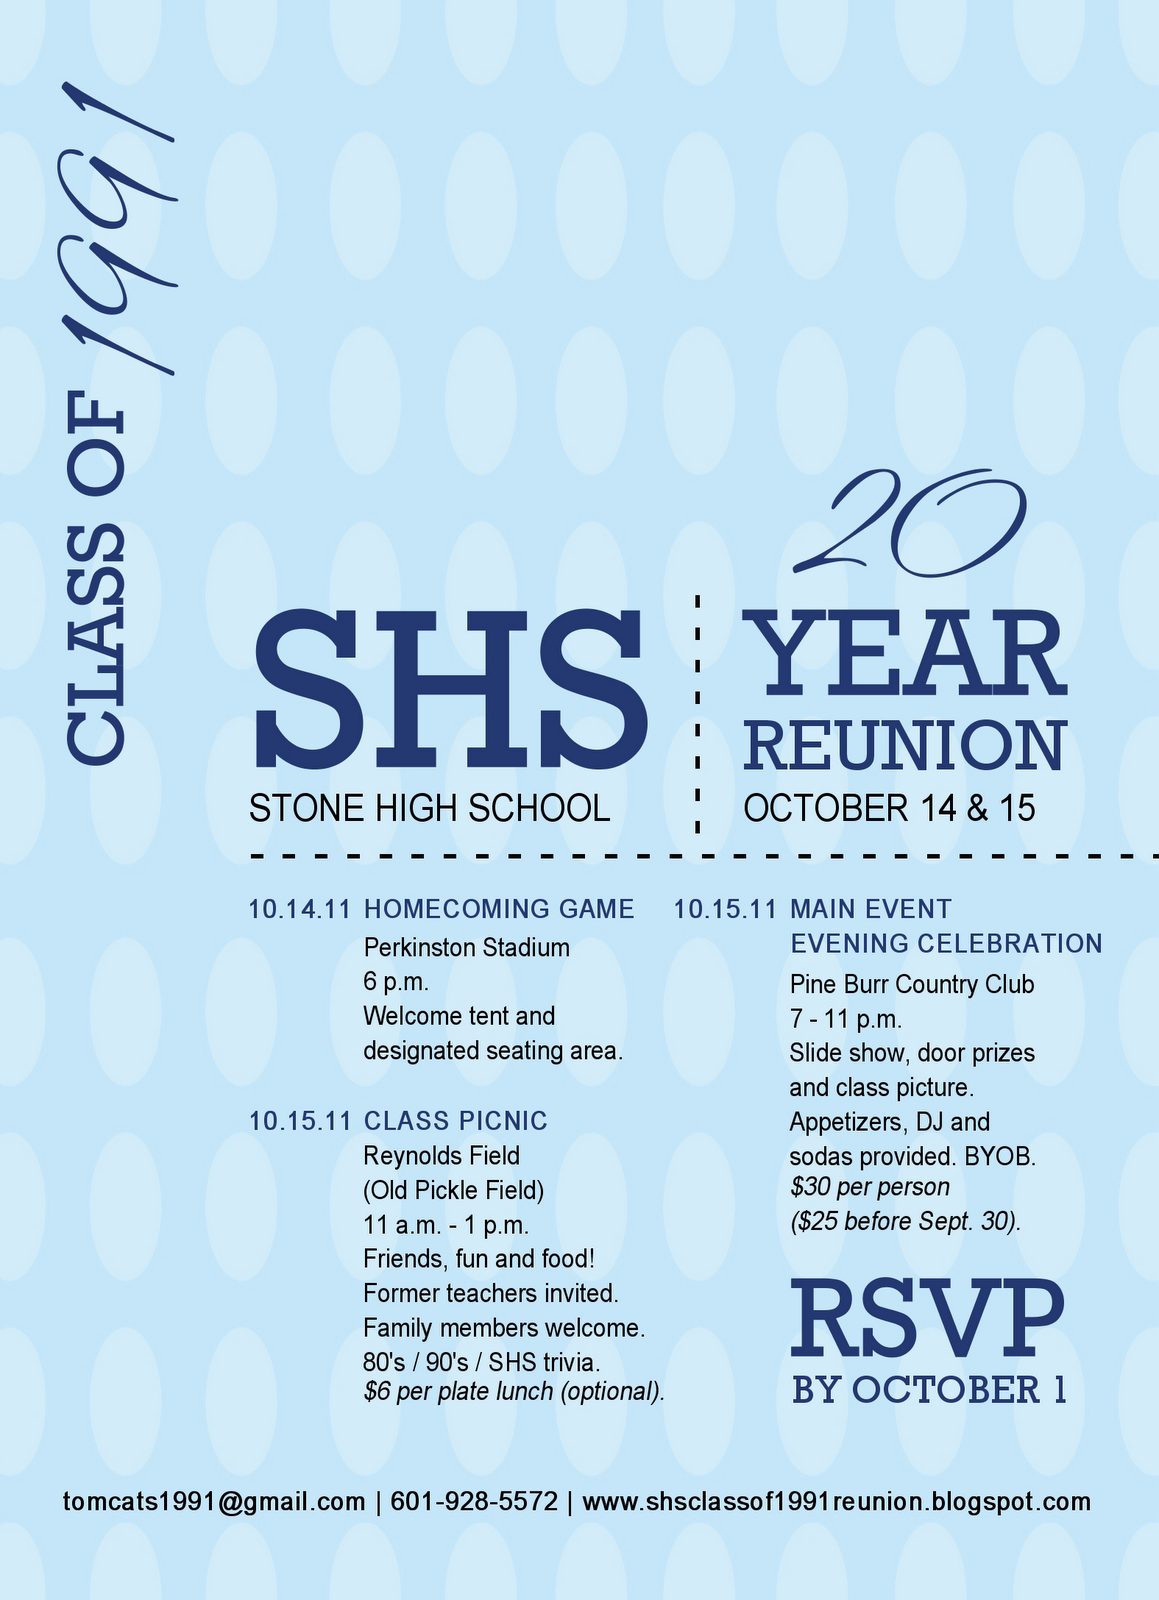 Stone high class of 1991 20 year reunion reunion invitation stone high class of 1991 20 year reunion reunion invitation stopboris Image collections